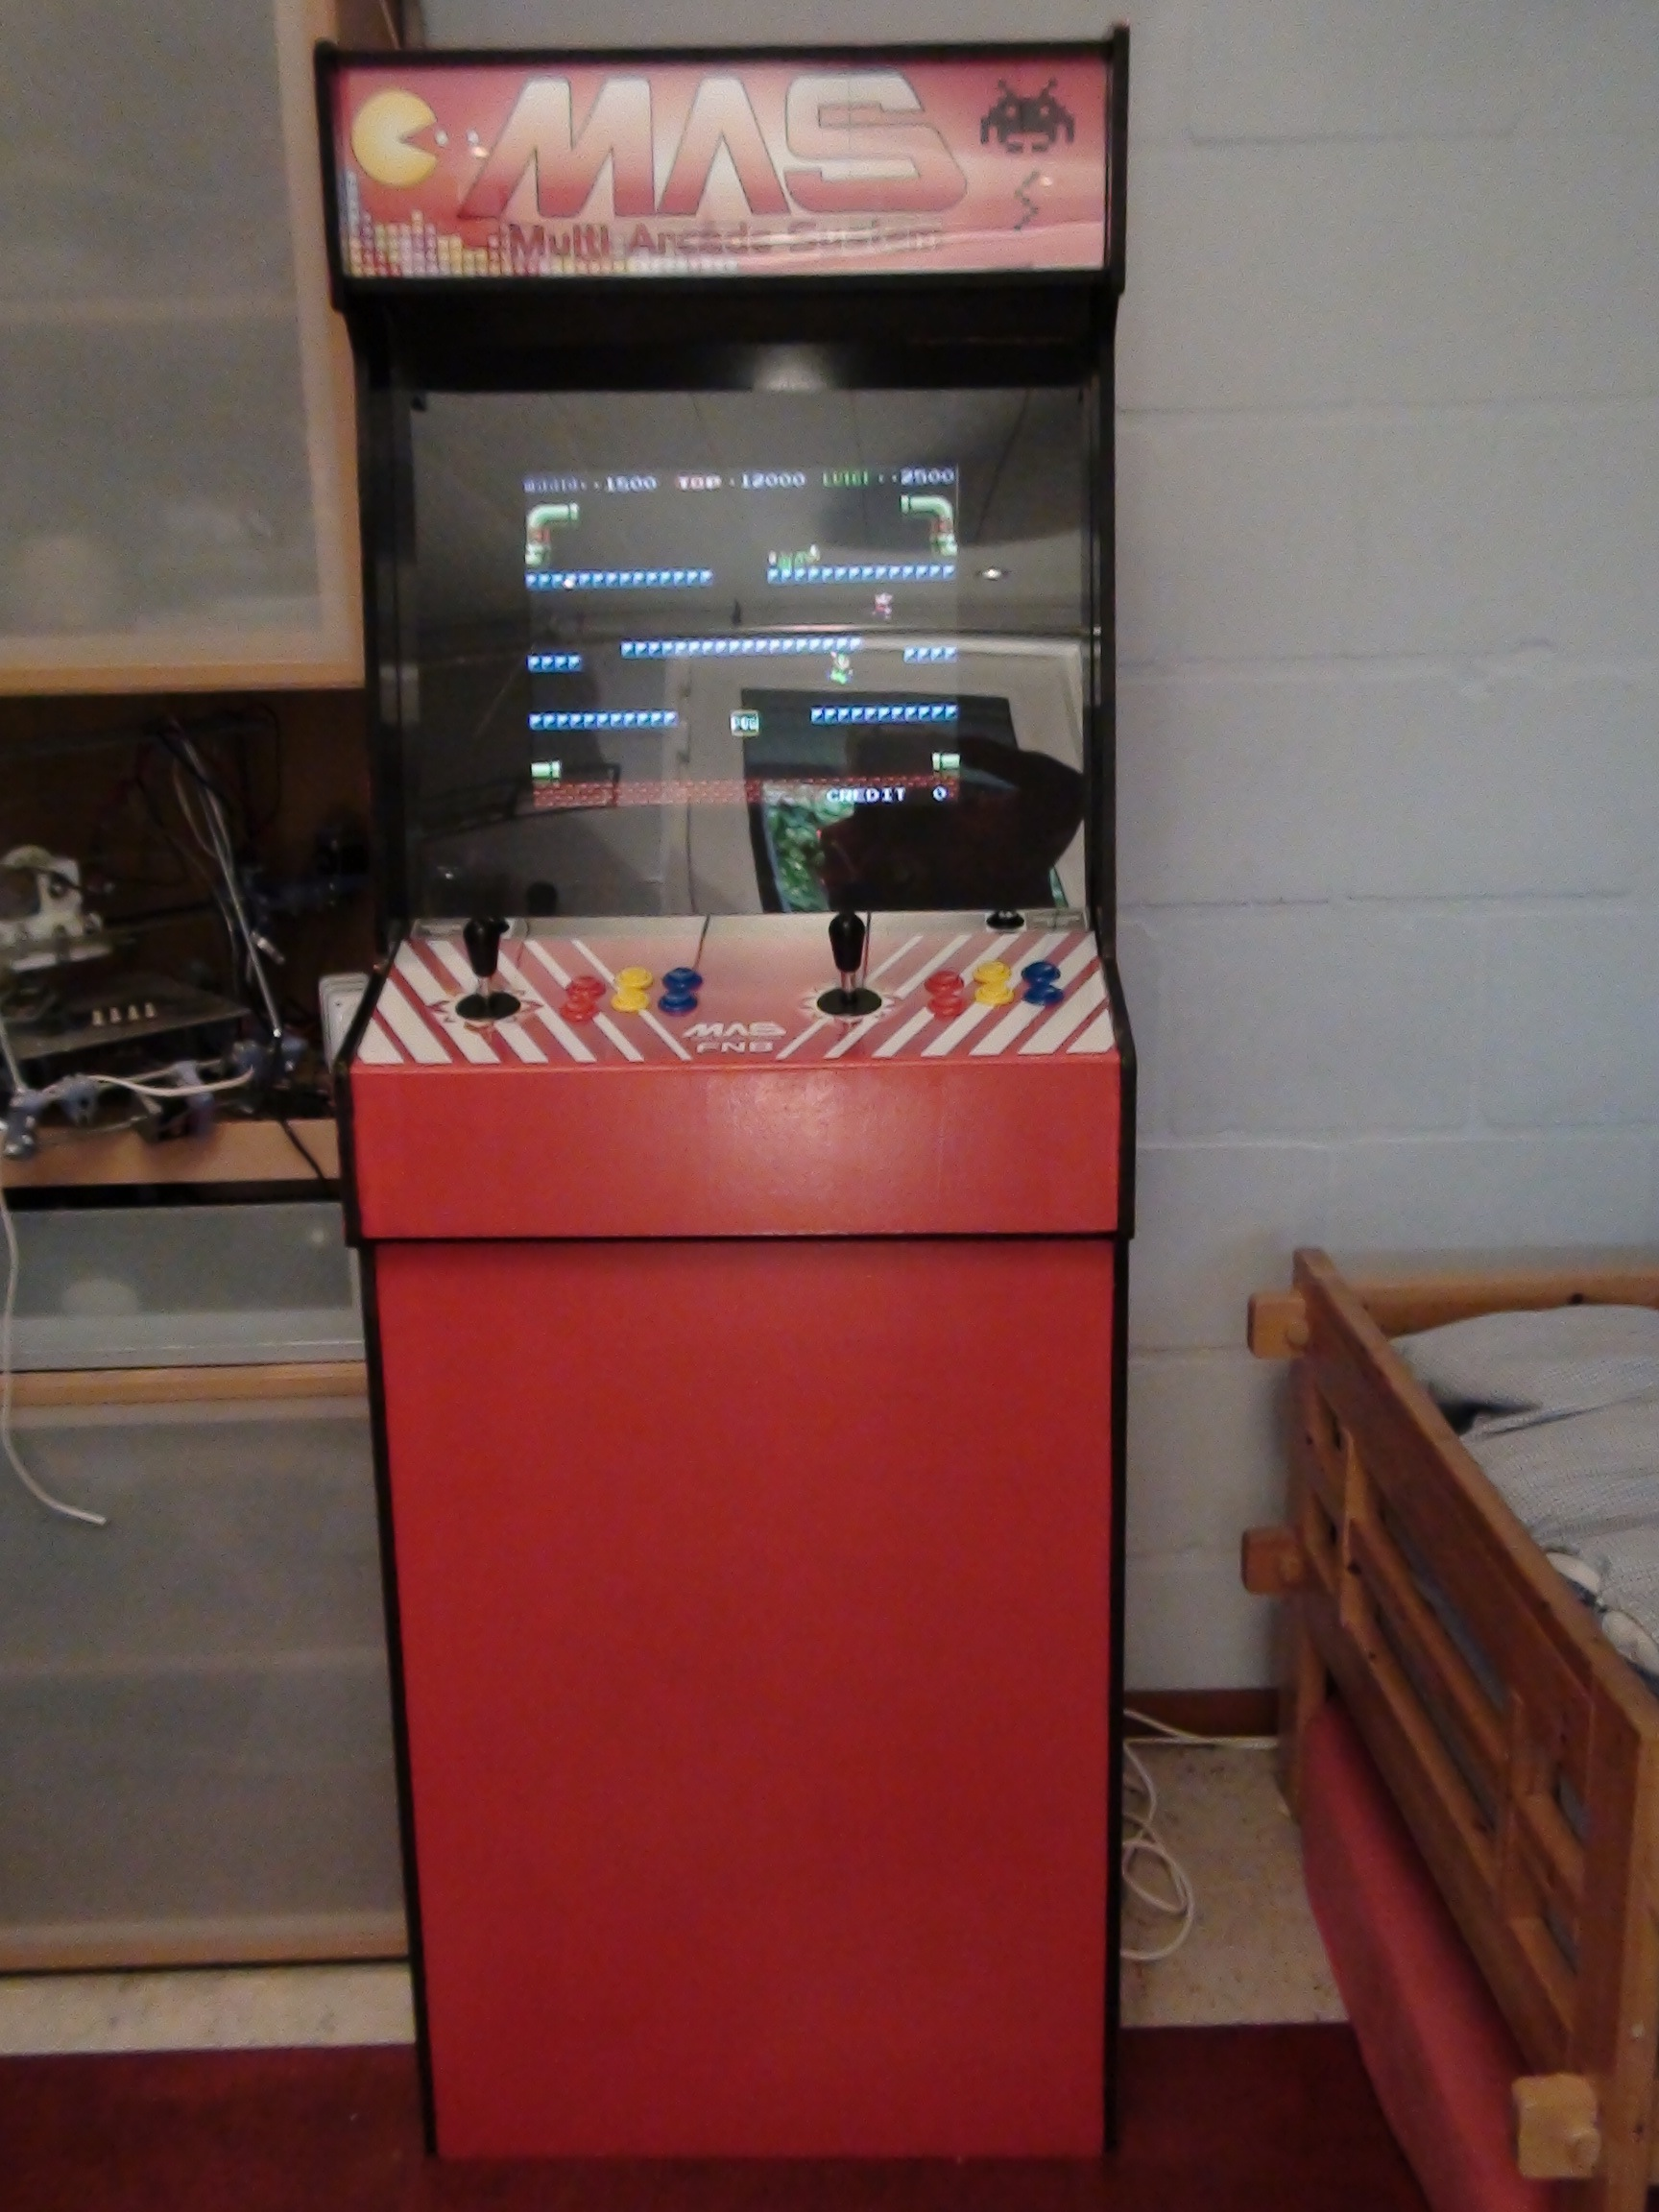 Build an arcade cabinet for 200euro ($250)